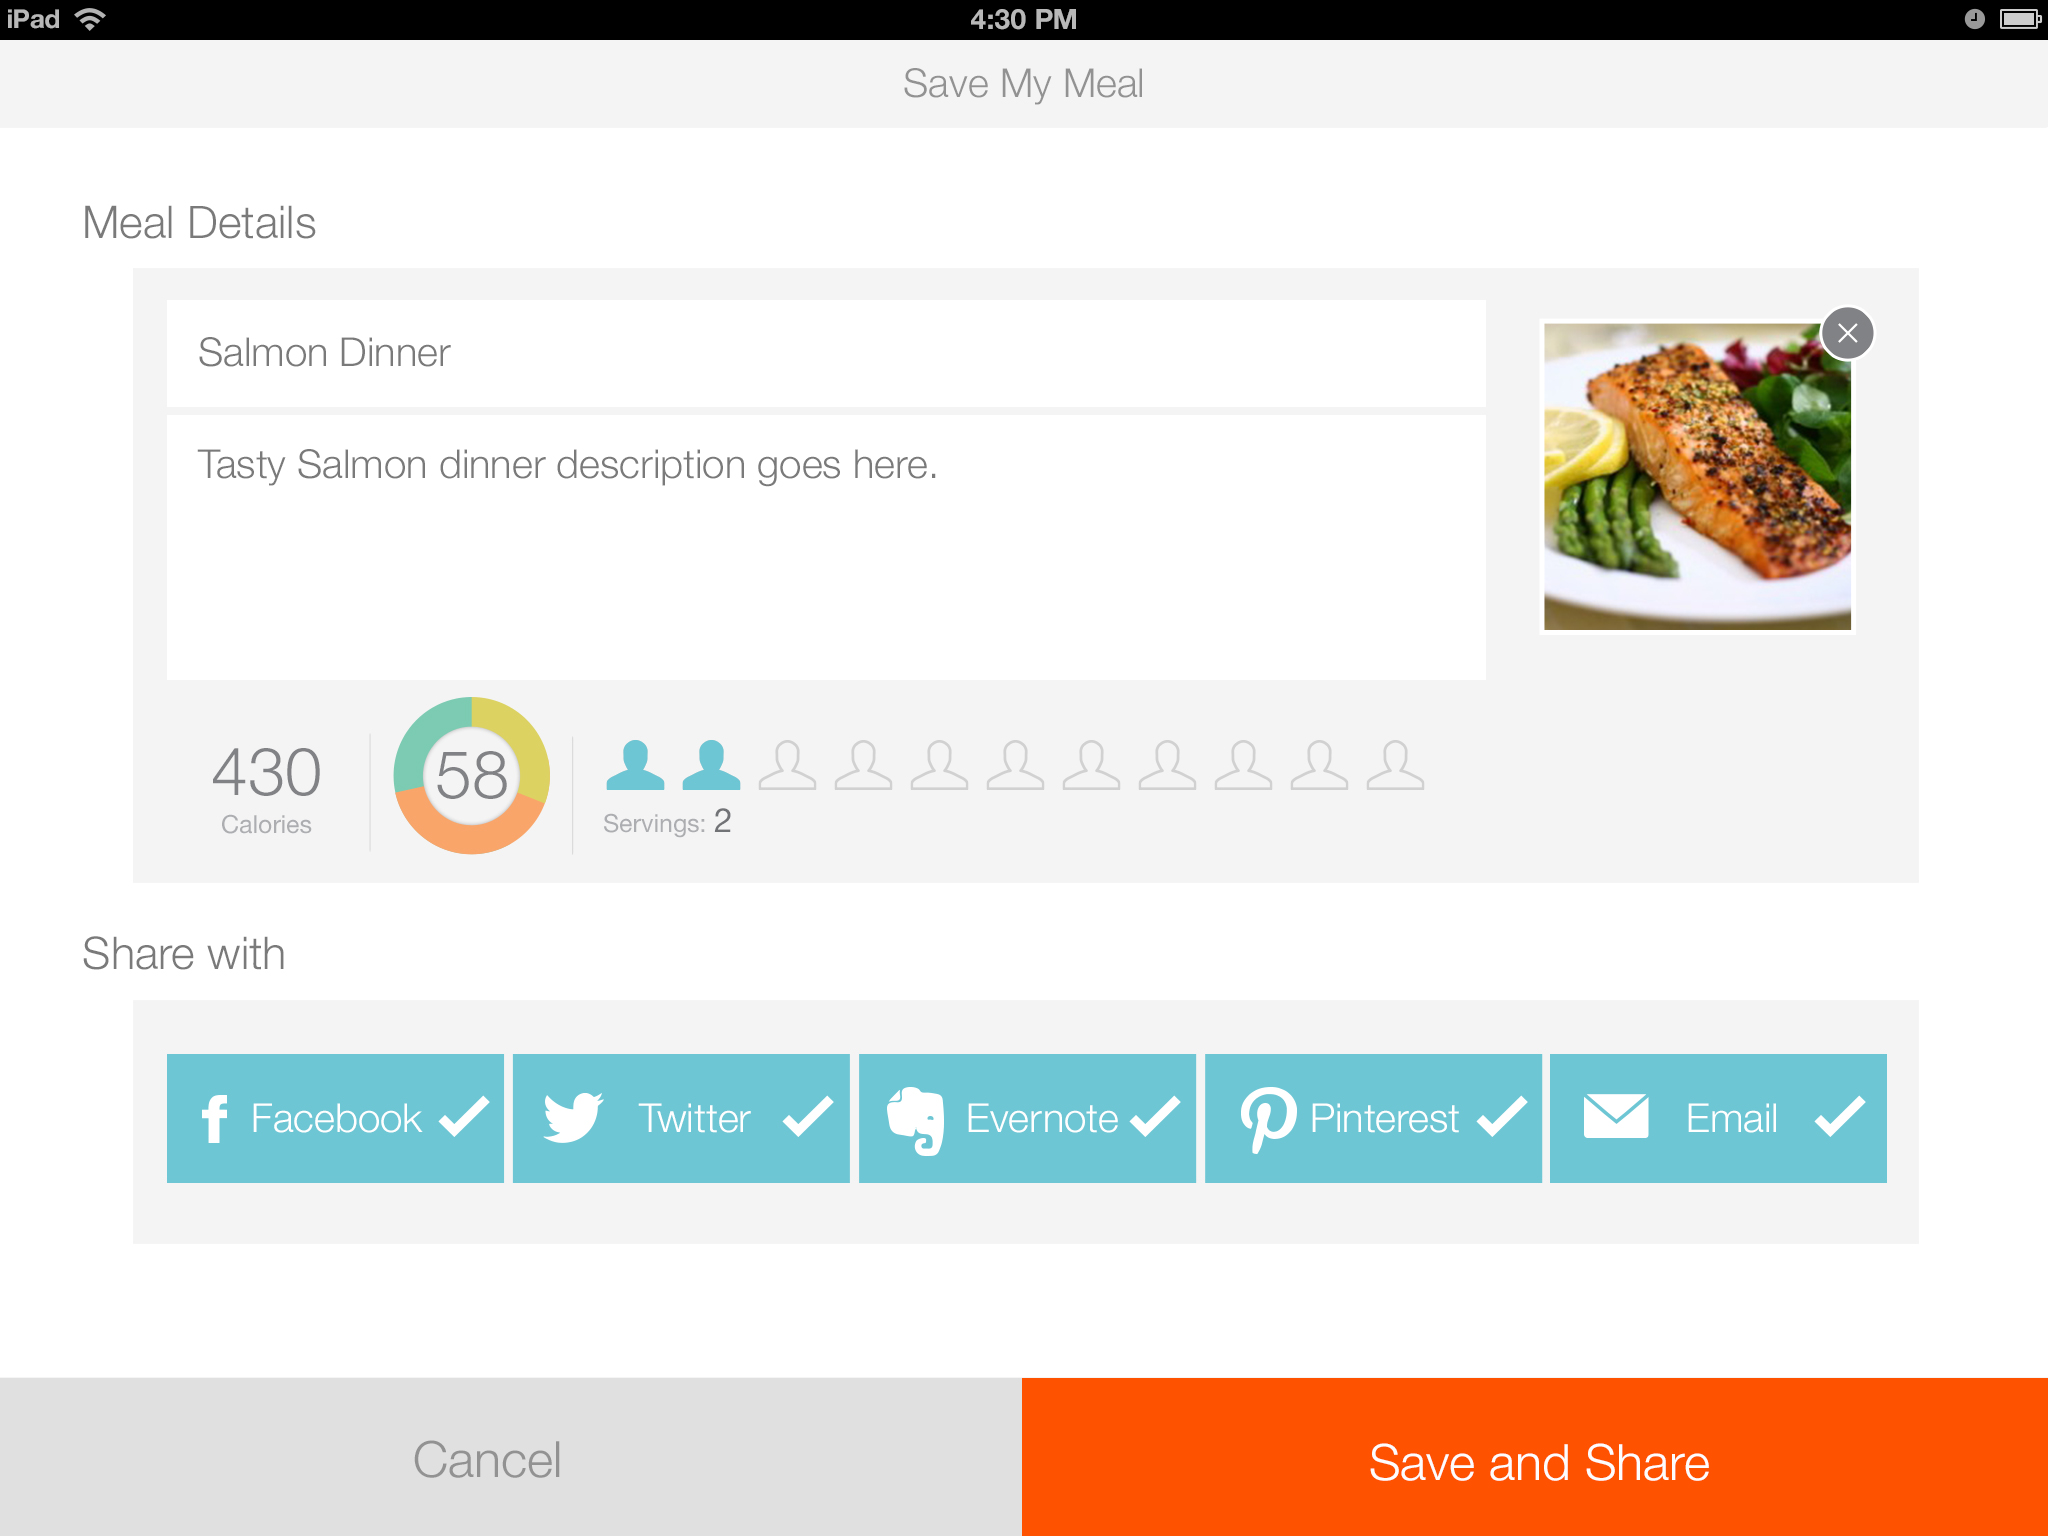 Share meal card pushes content to your favorite social platforms